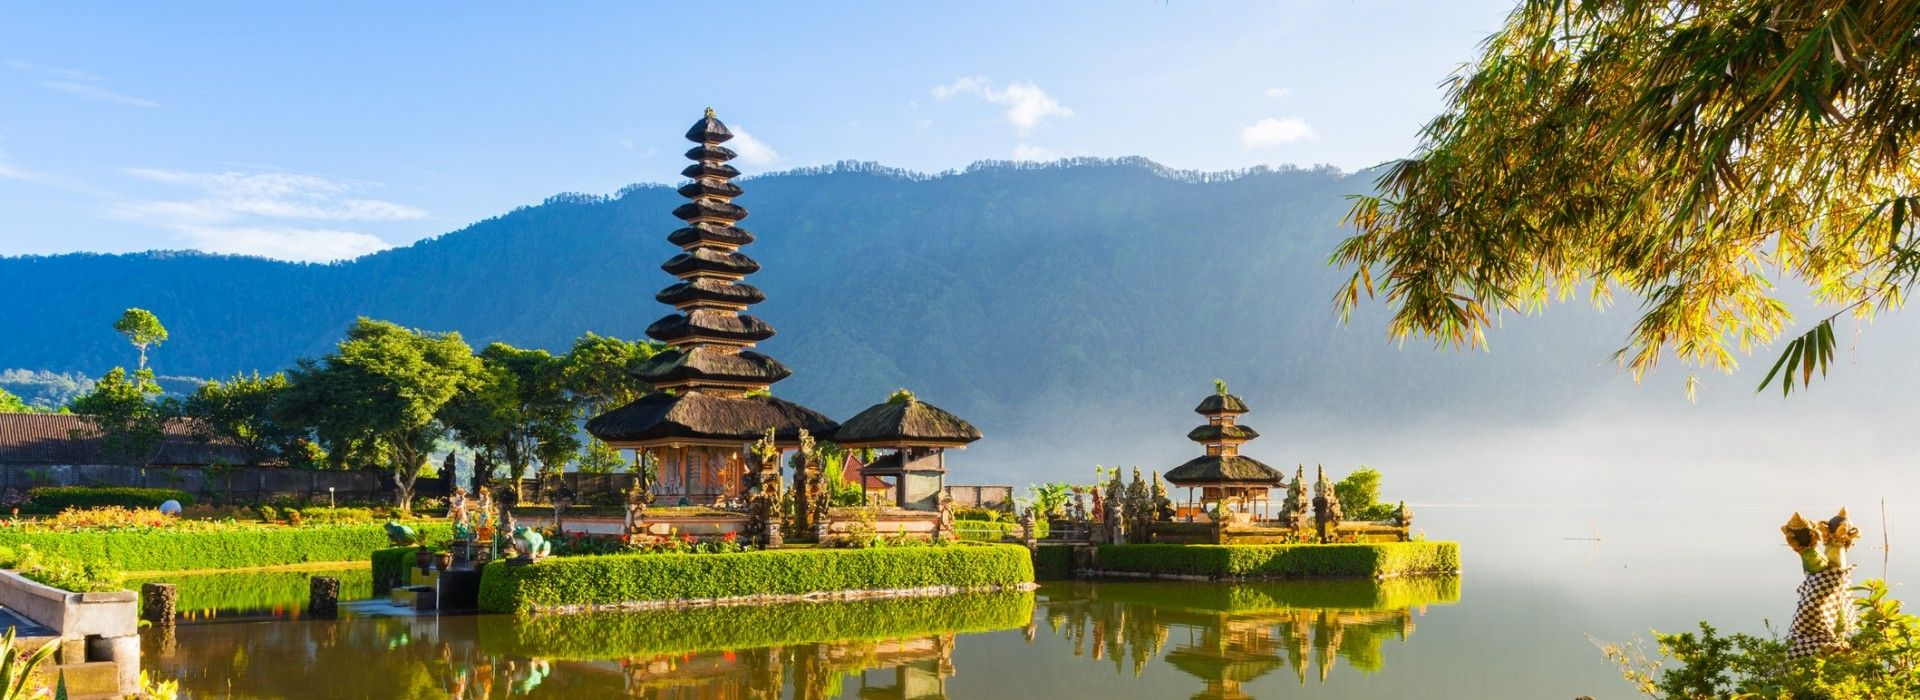 Special interests and hobbies Tours in Bali